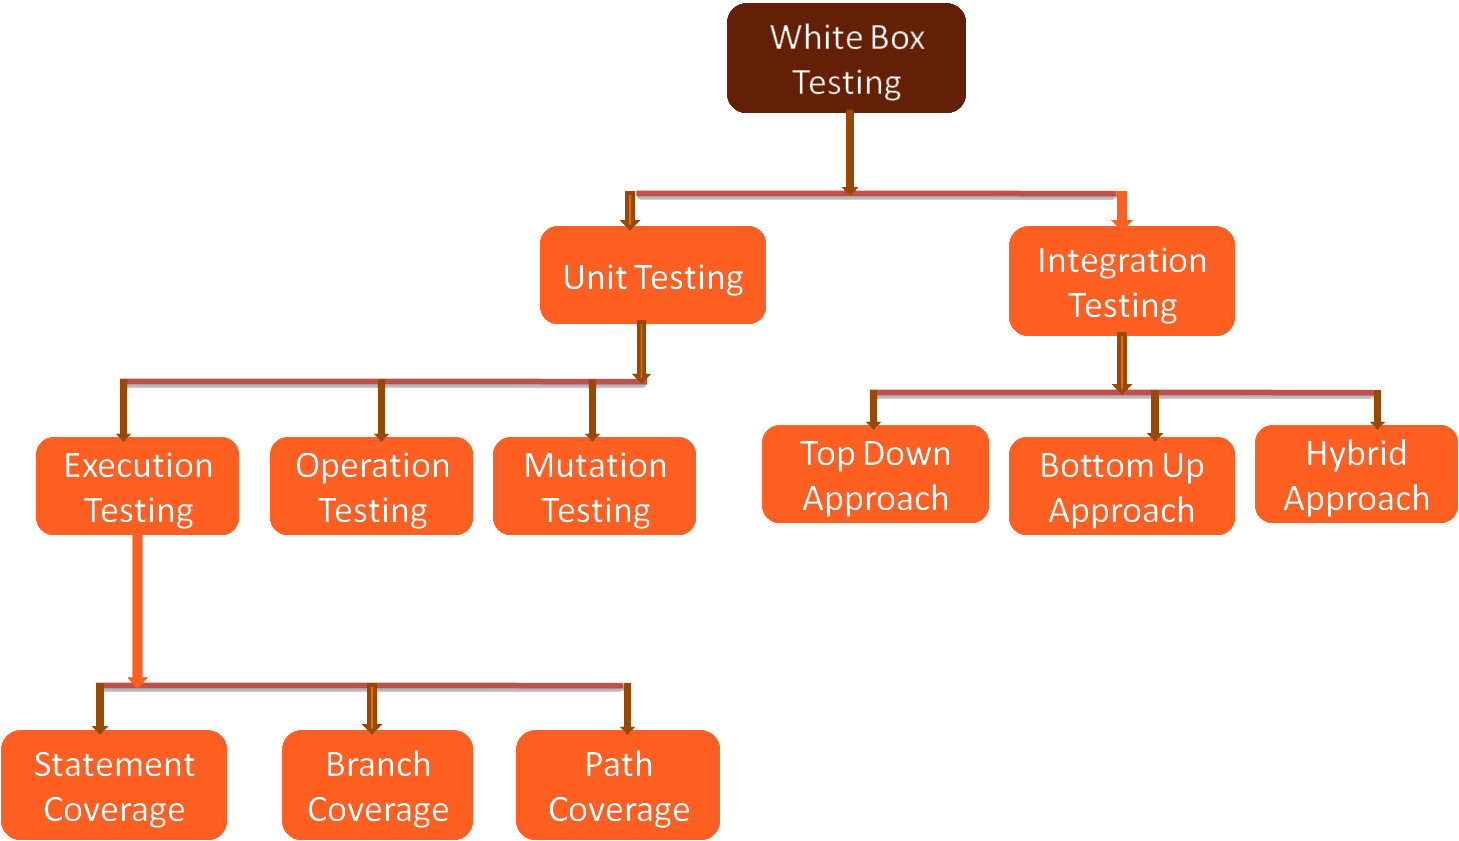 Types of White Box Testing